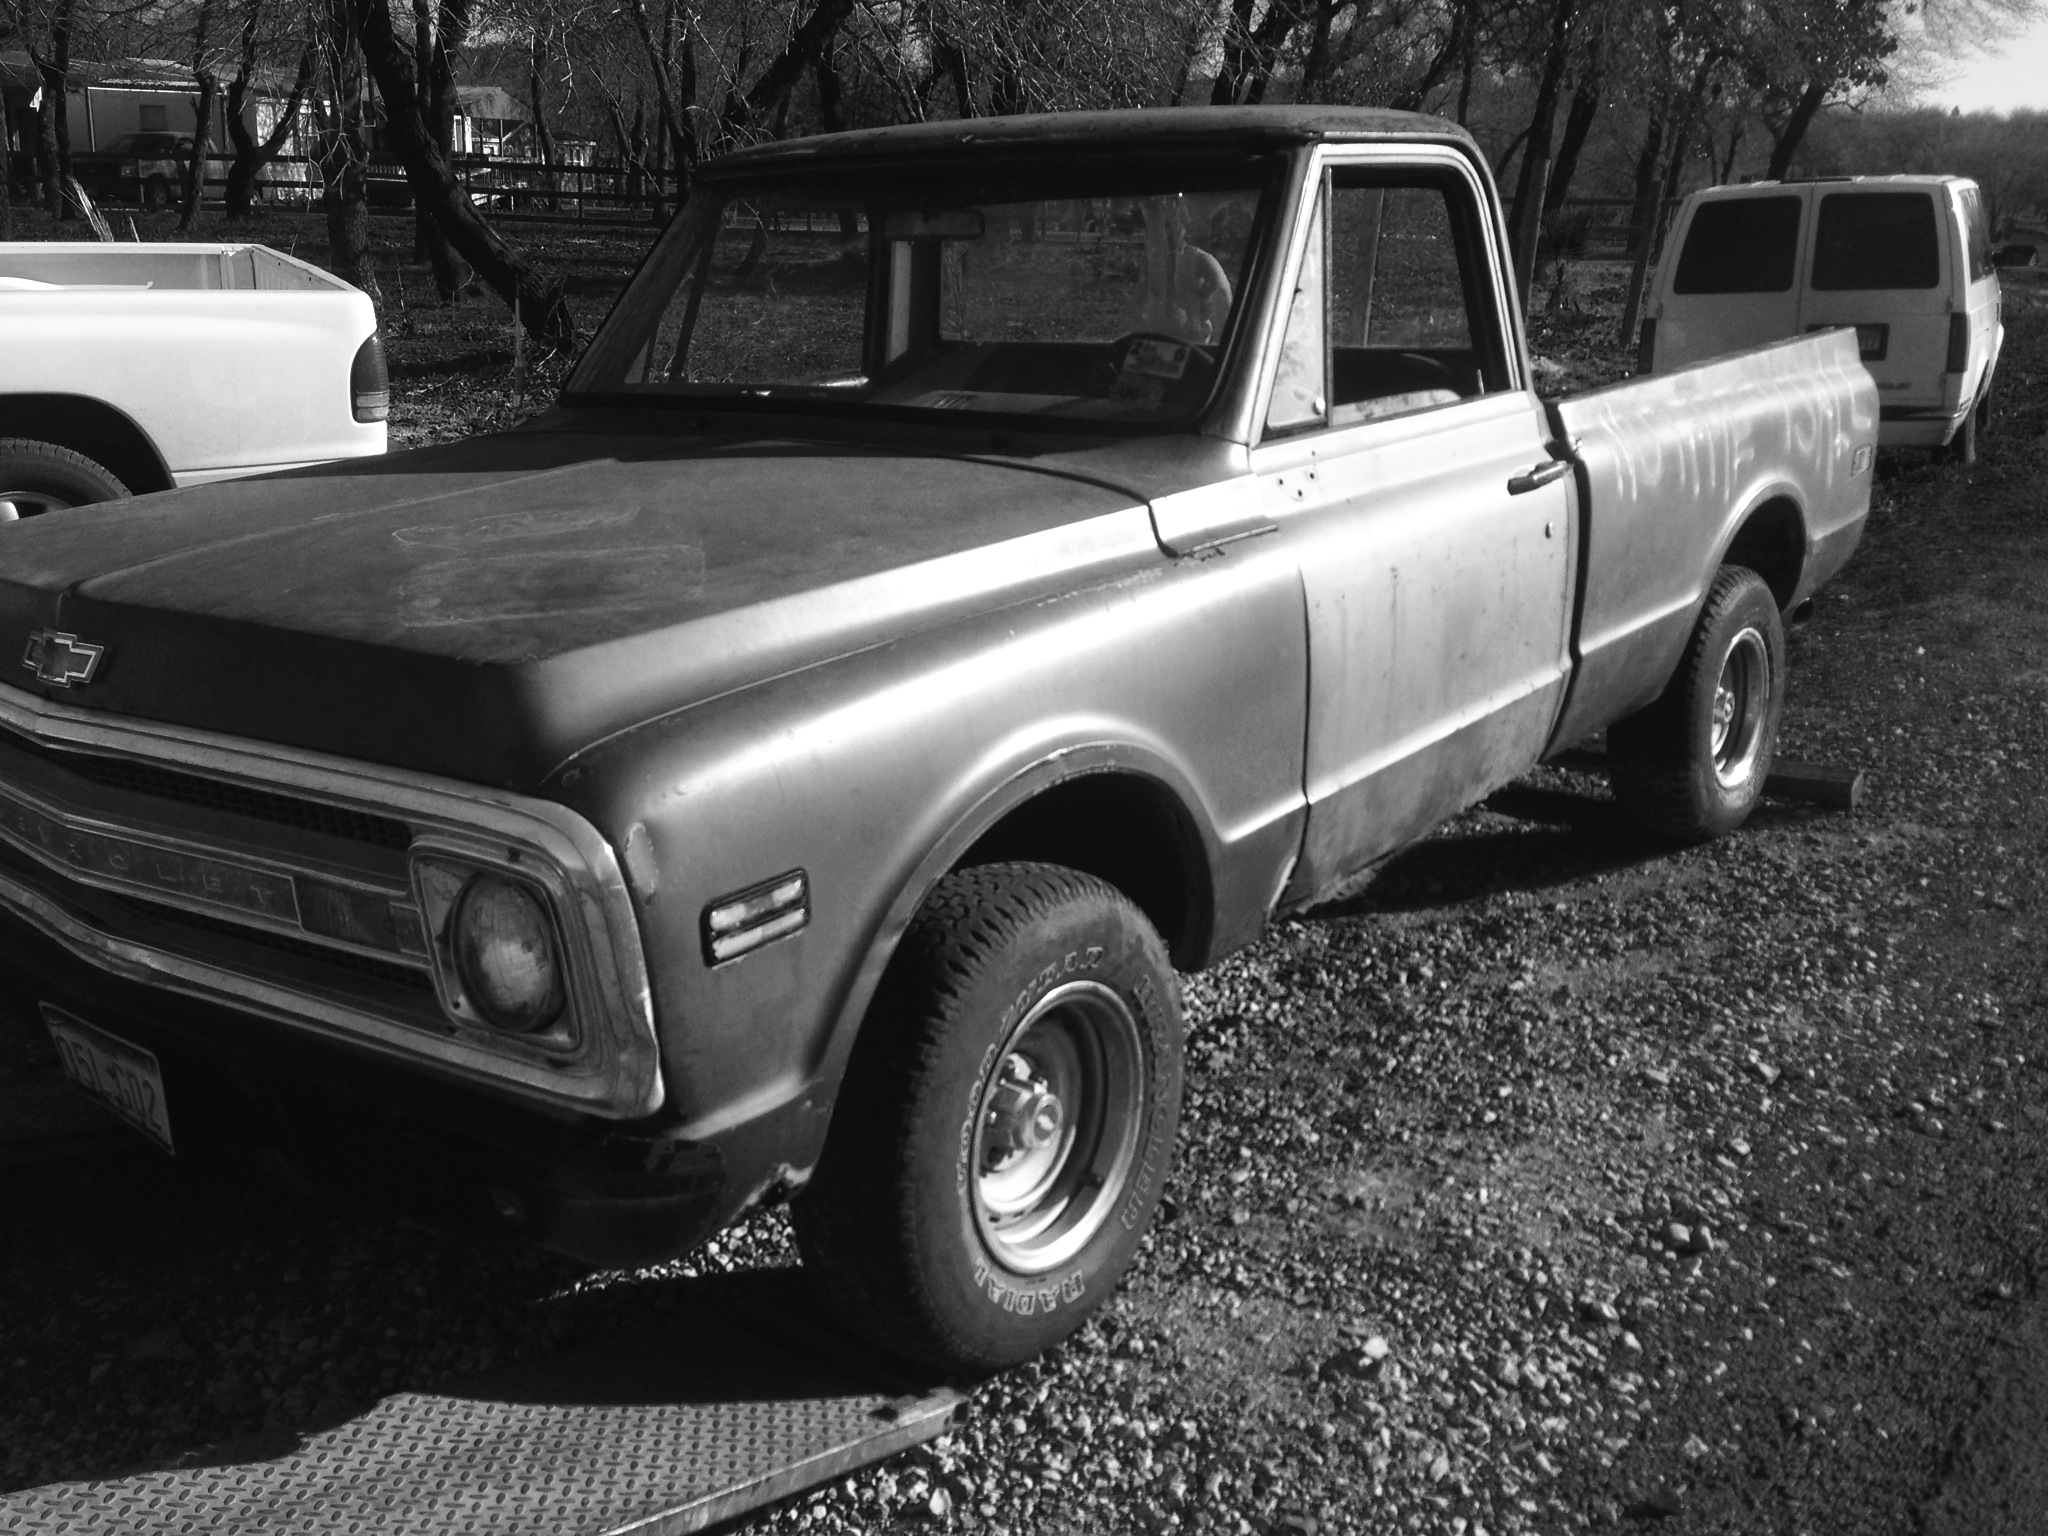 1969 Chevrolet C/K-Pick-Up